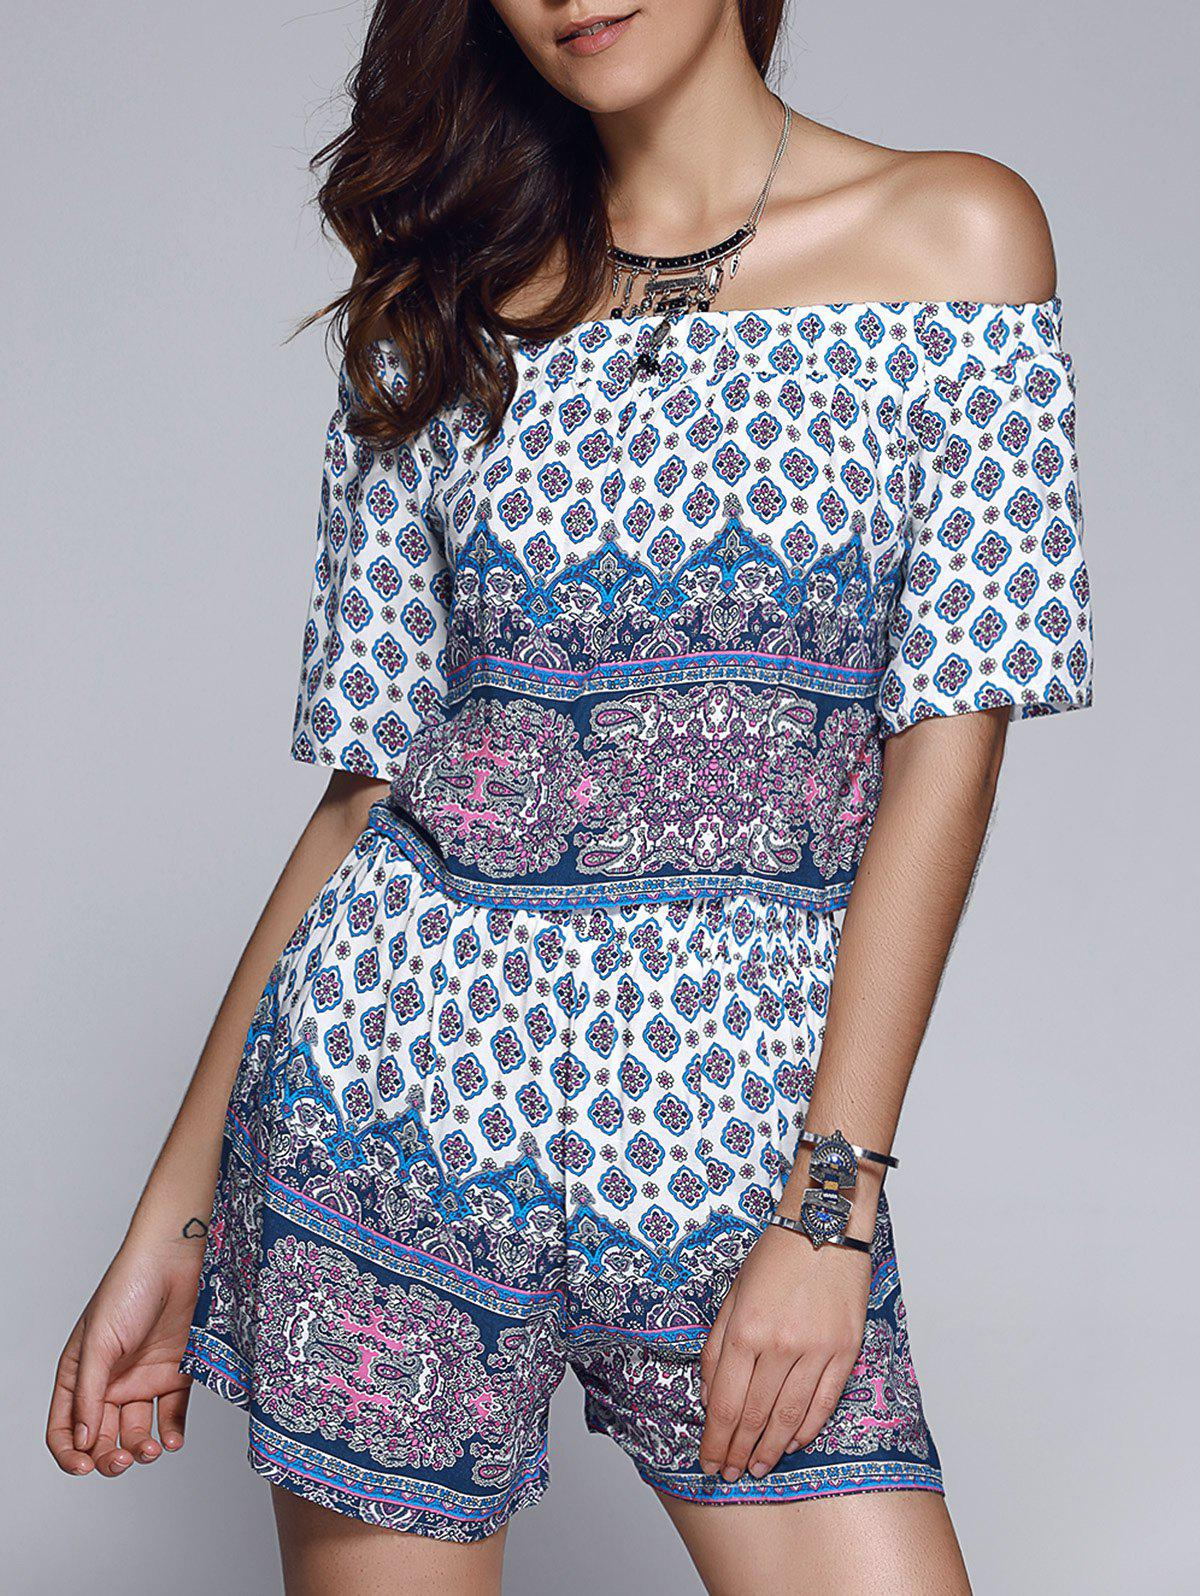 Ethnic Style Printed Women's Off The Shoulder Crop Top + Shorts Twinset